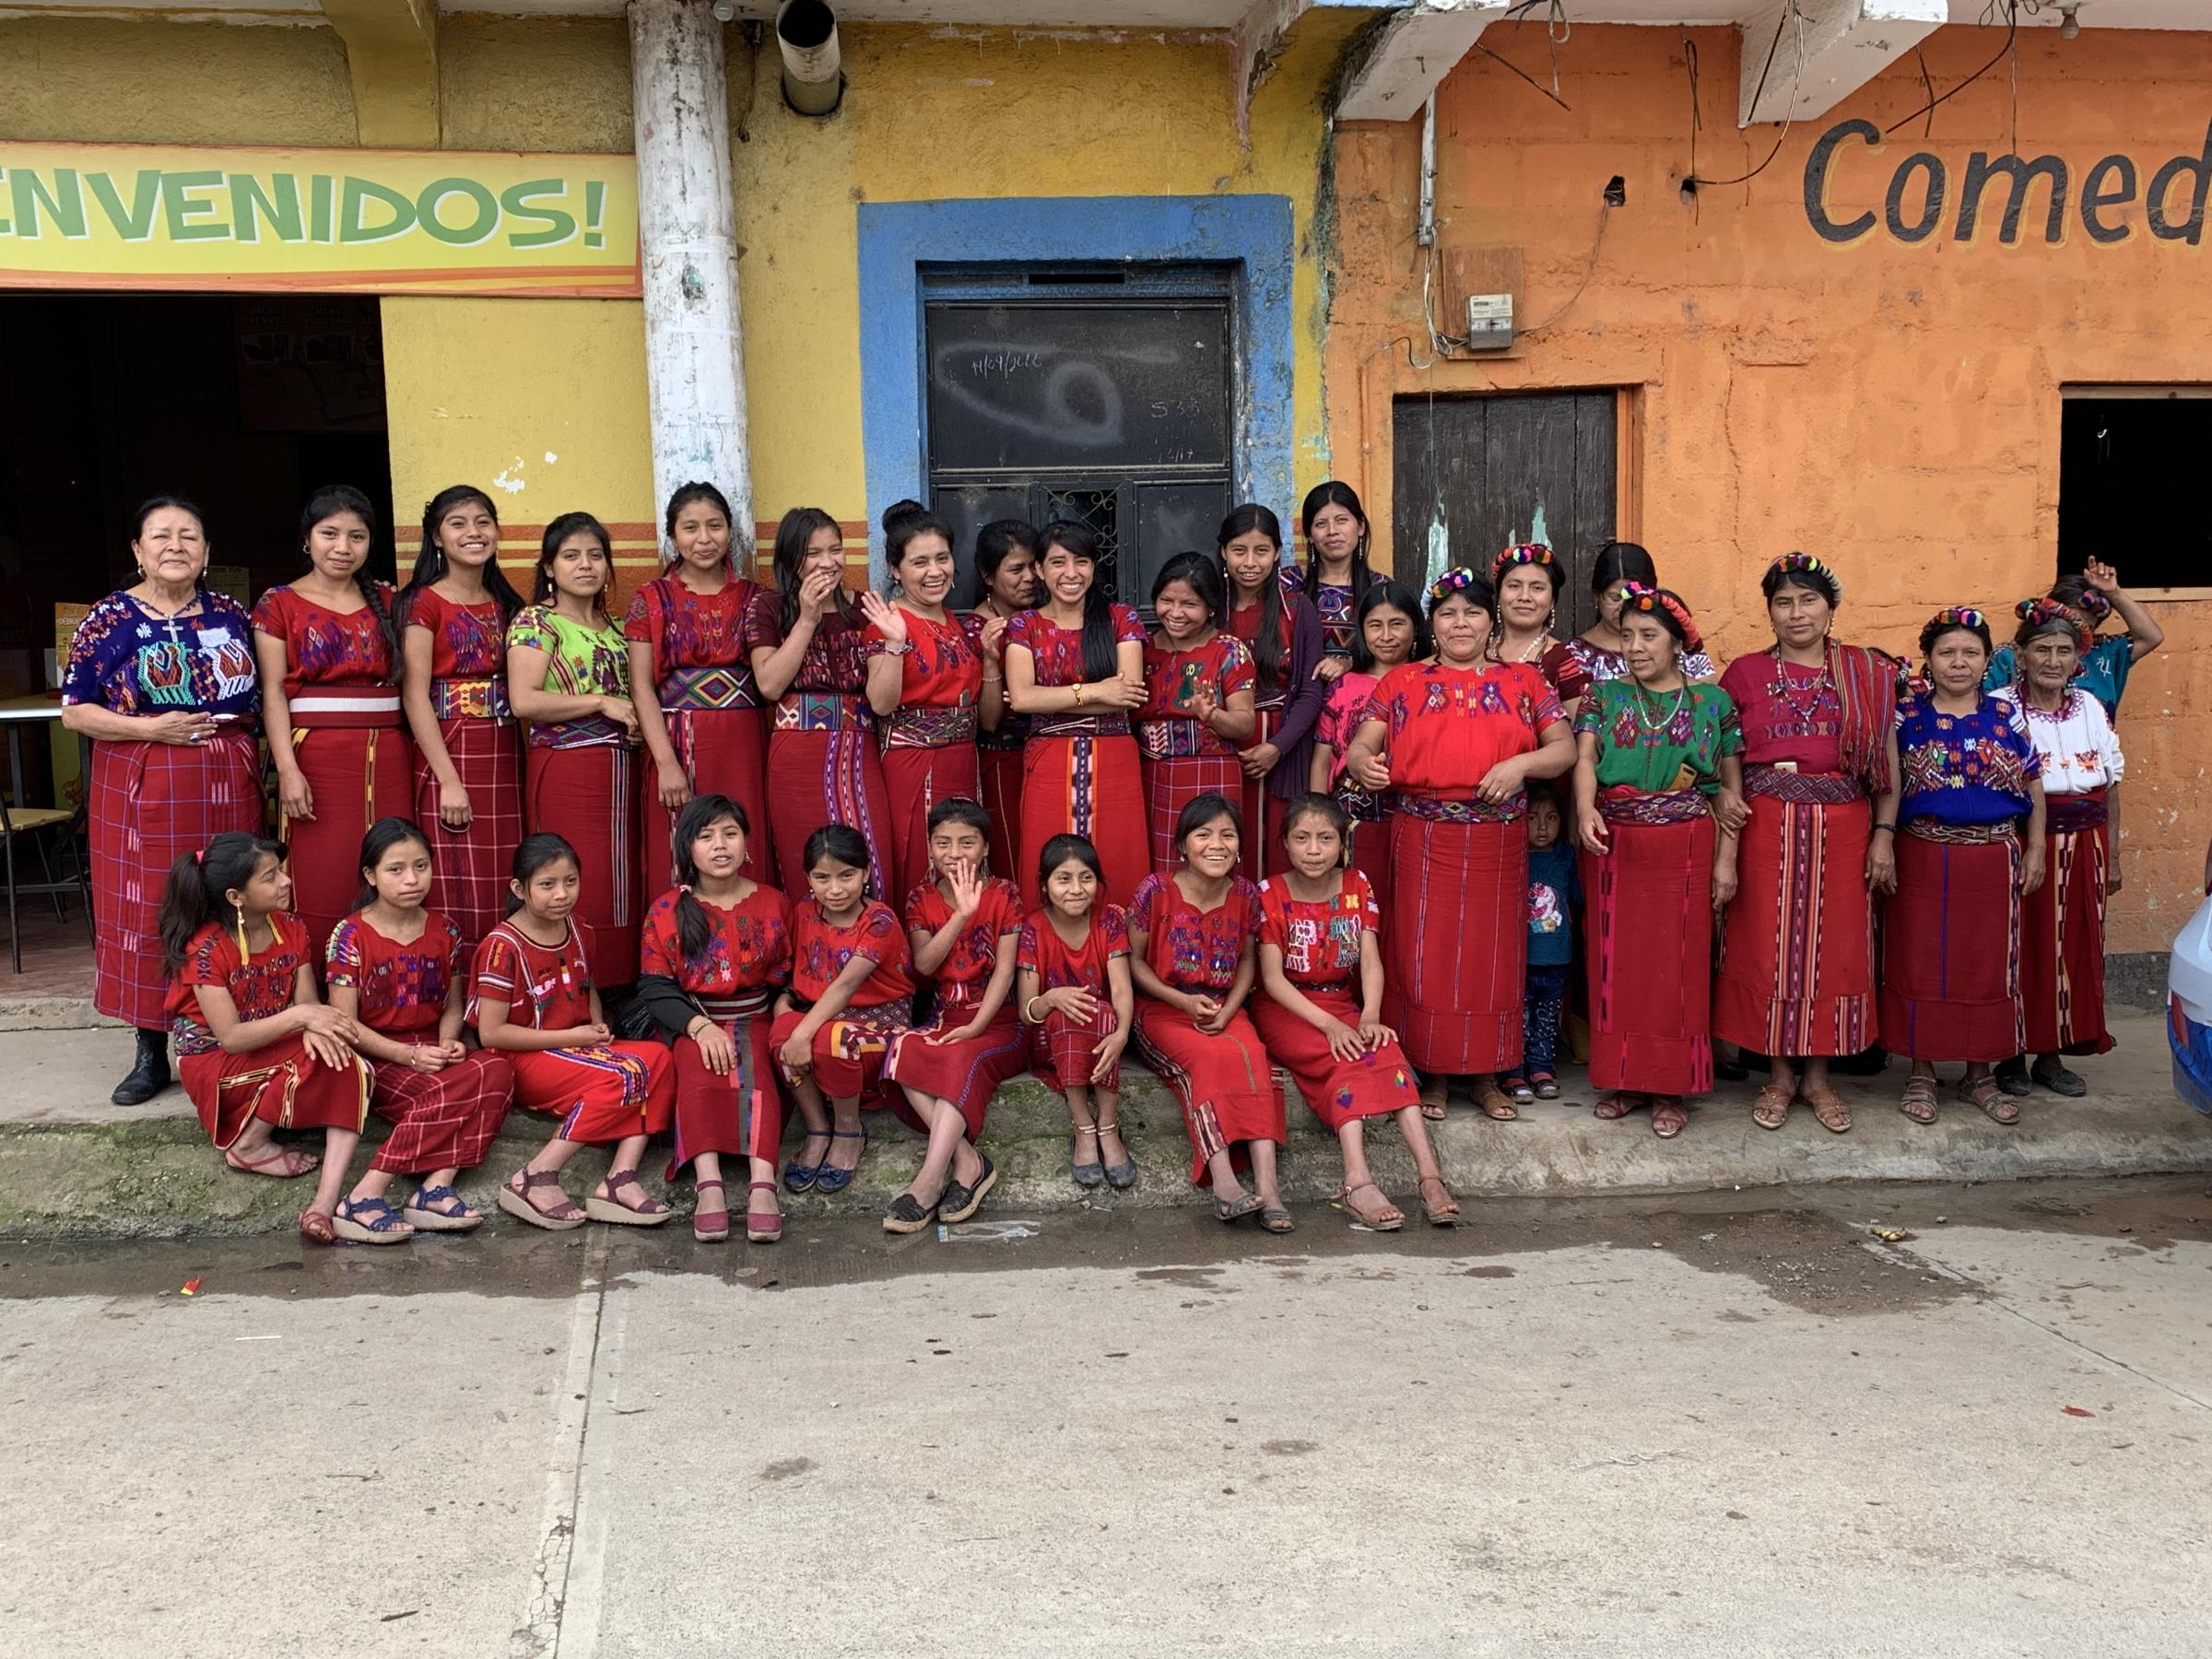 Group of Ixil women and girls